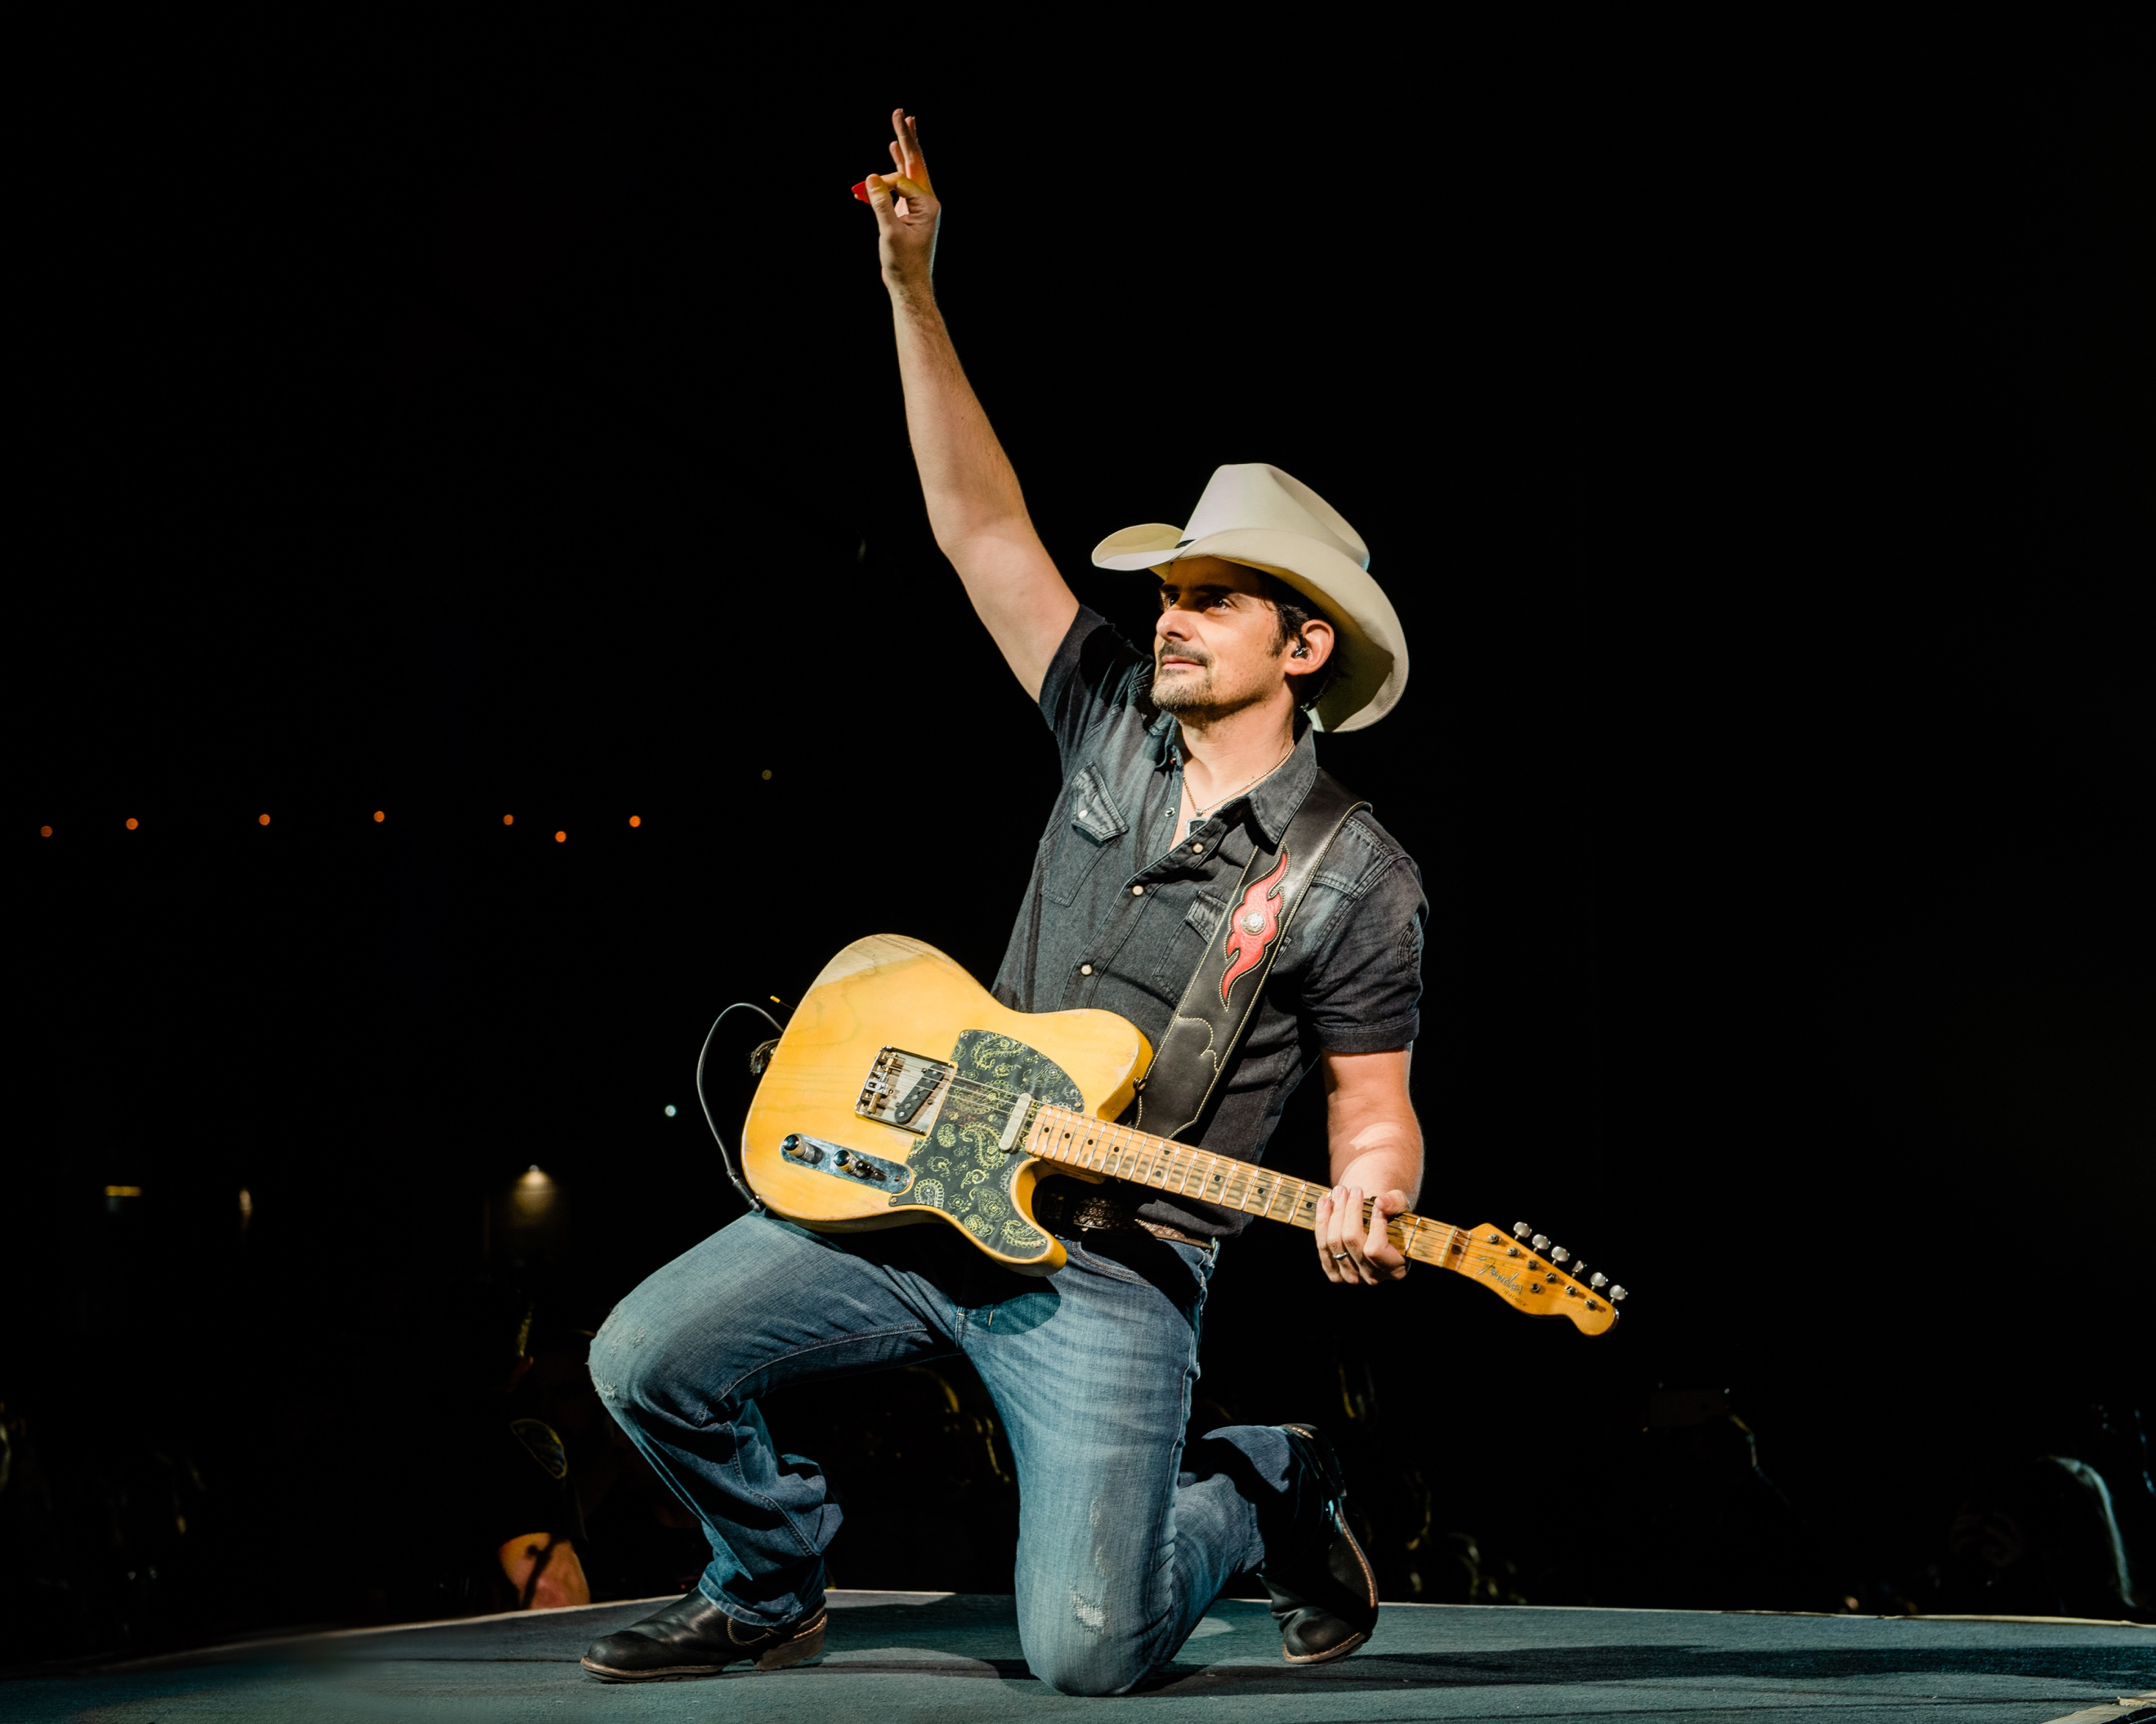 Brad Paisley Announces 2020 World Tour